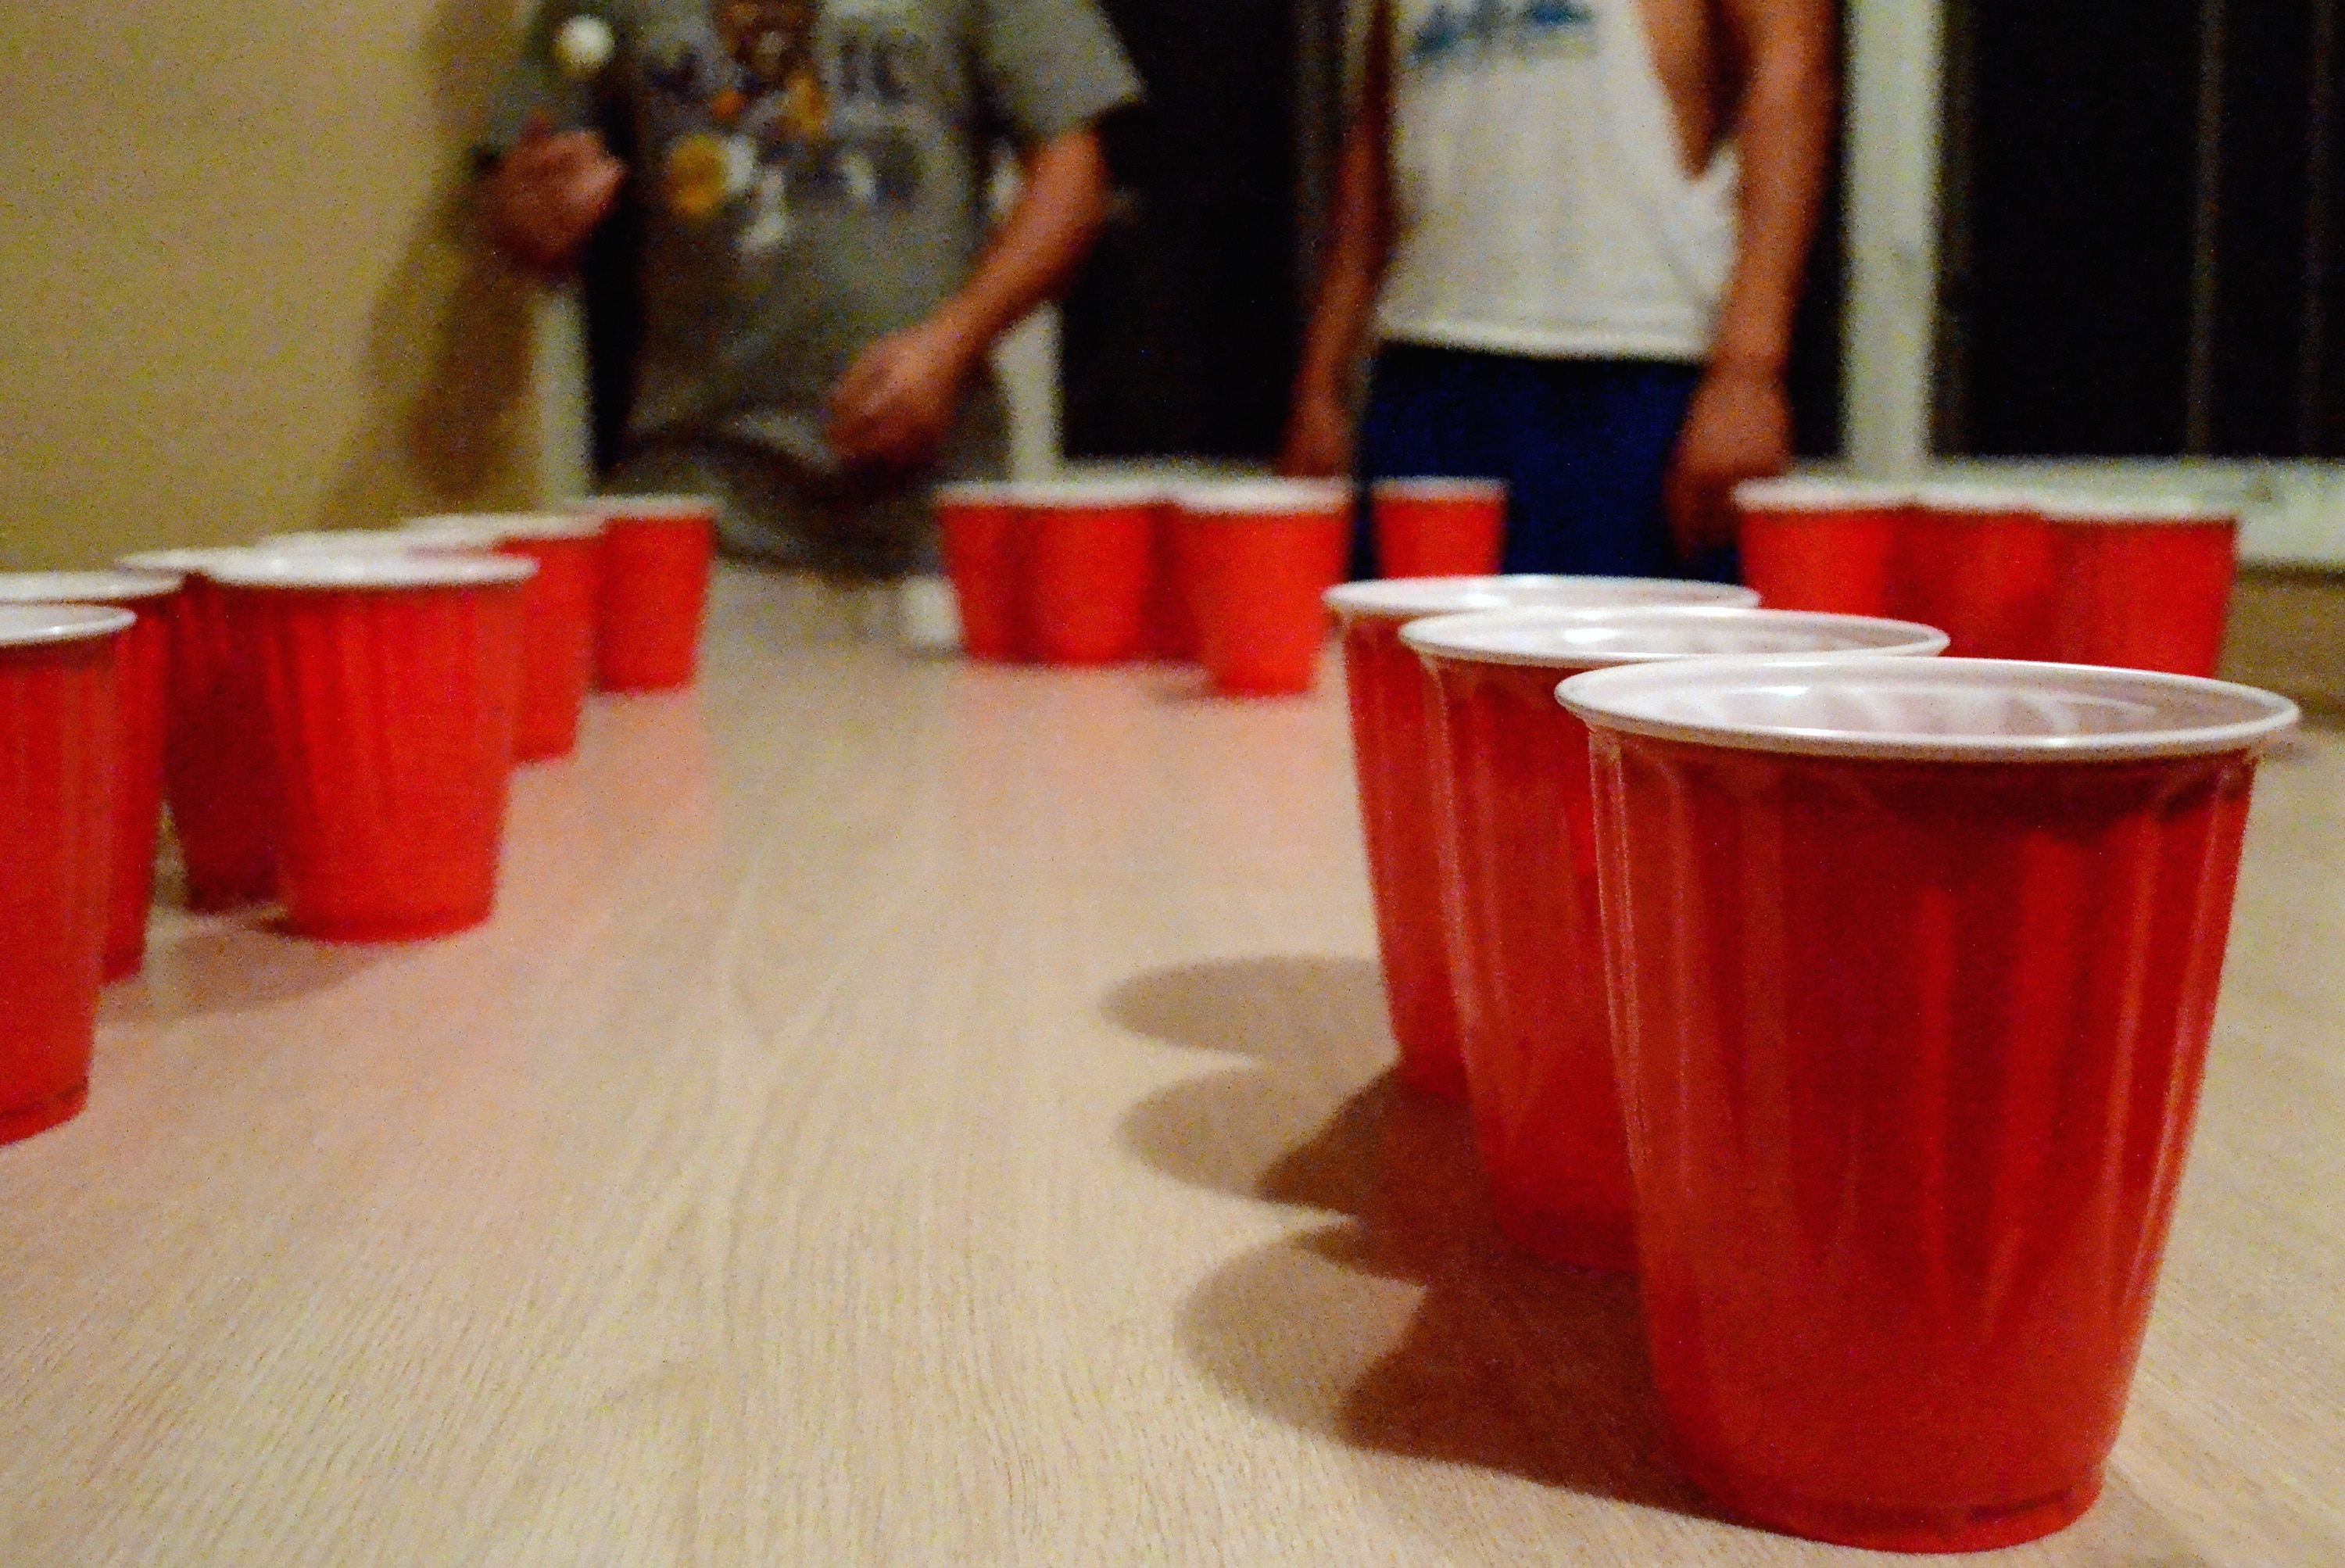 CU students partake in a friendly game of beer pong.  Nobody wants to bring down their teammate by not making any cups. (Nate Bruzdzinski/CU Independent File)